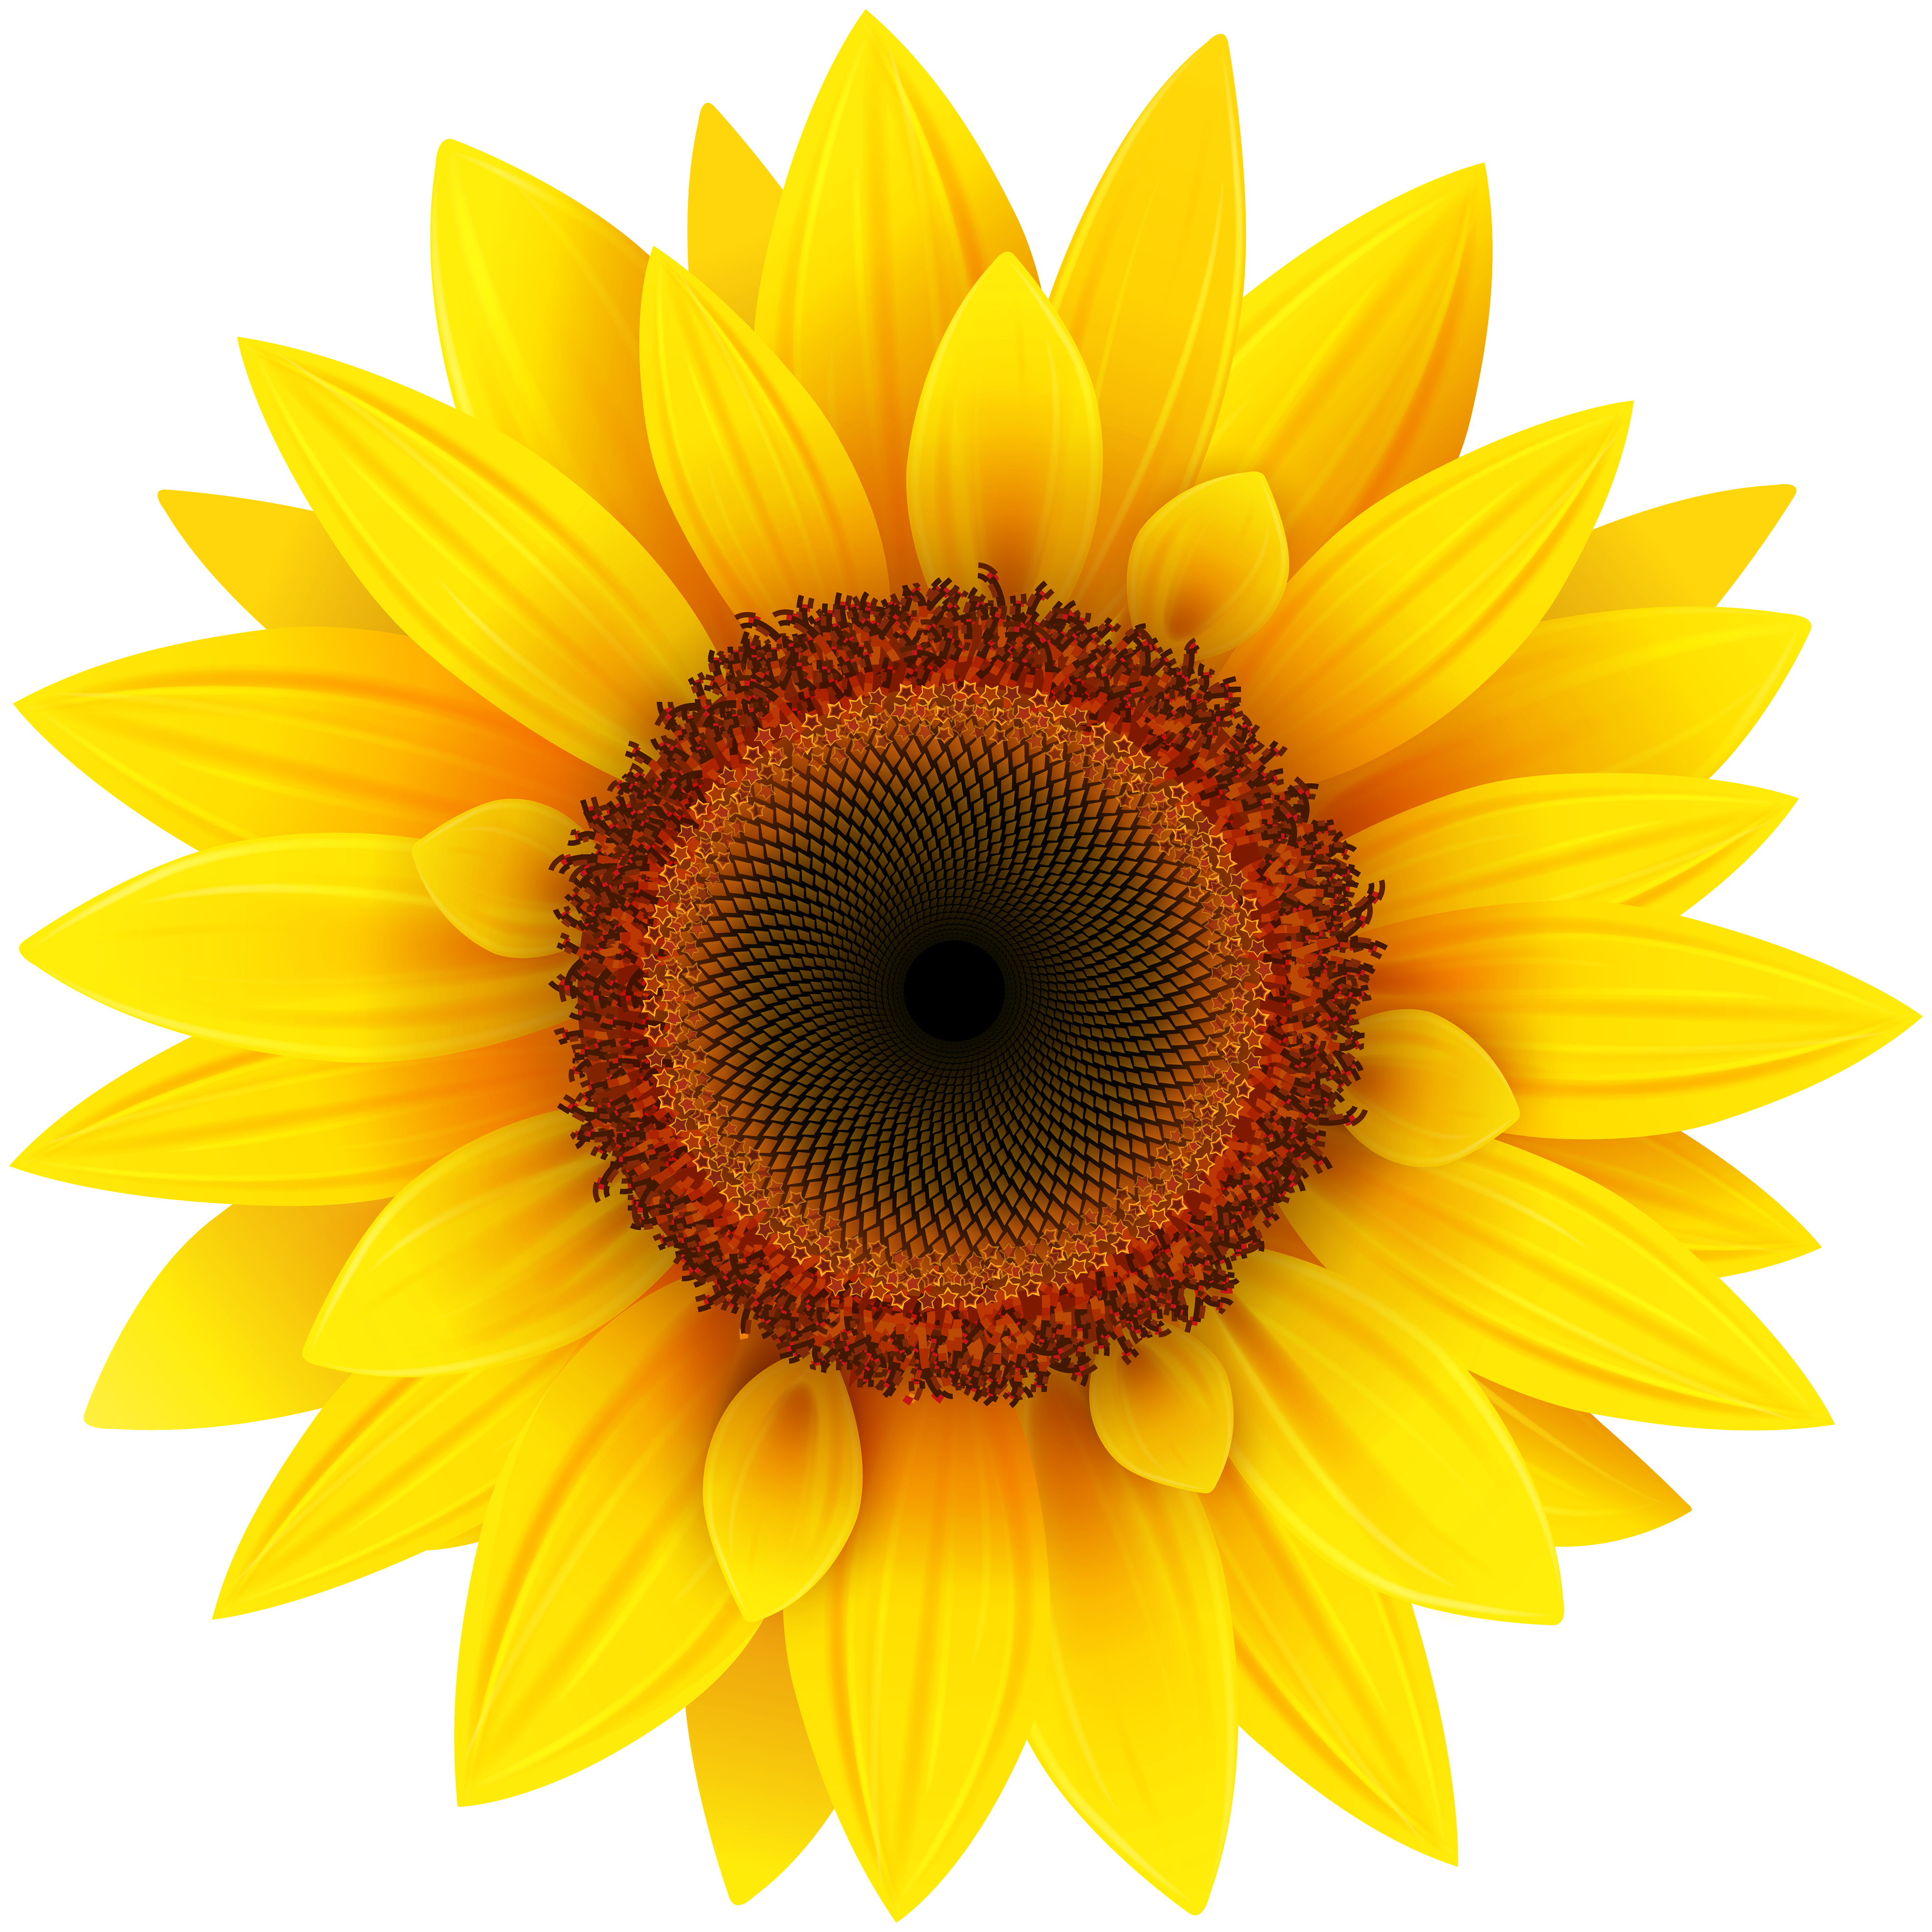 Sunflower clipart png. Picture gallery yopriceville high